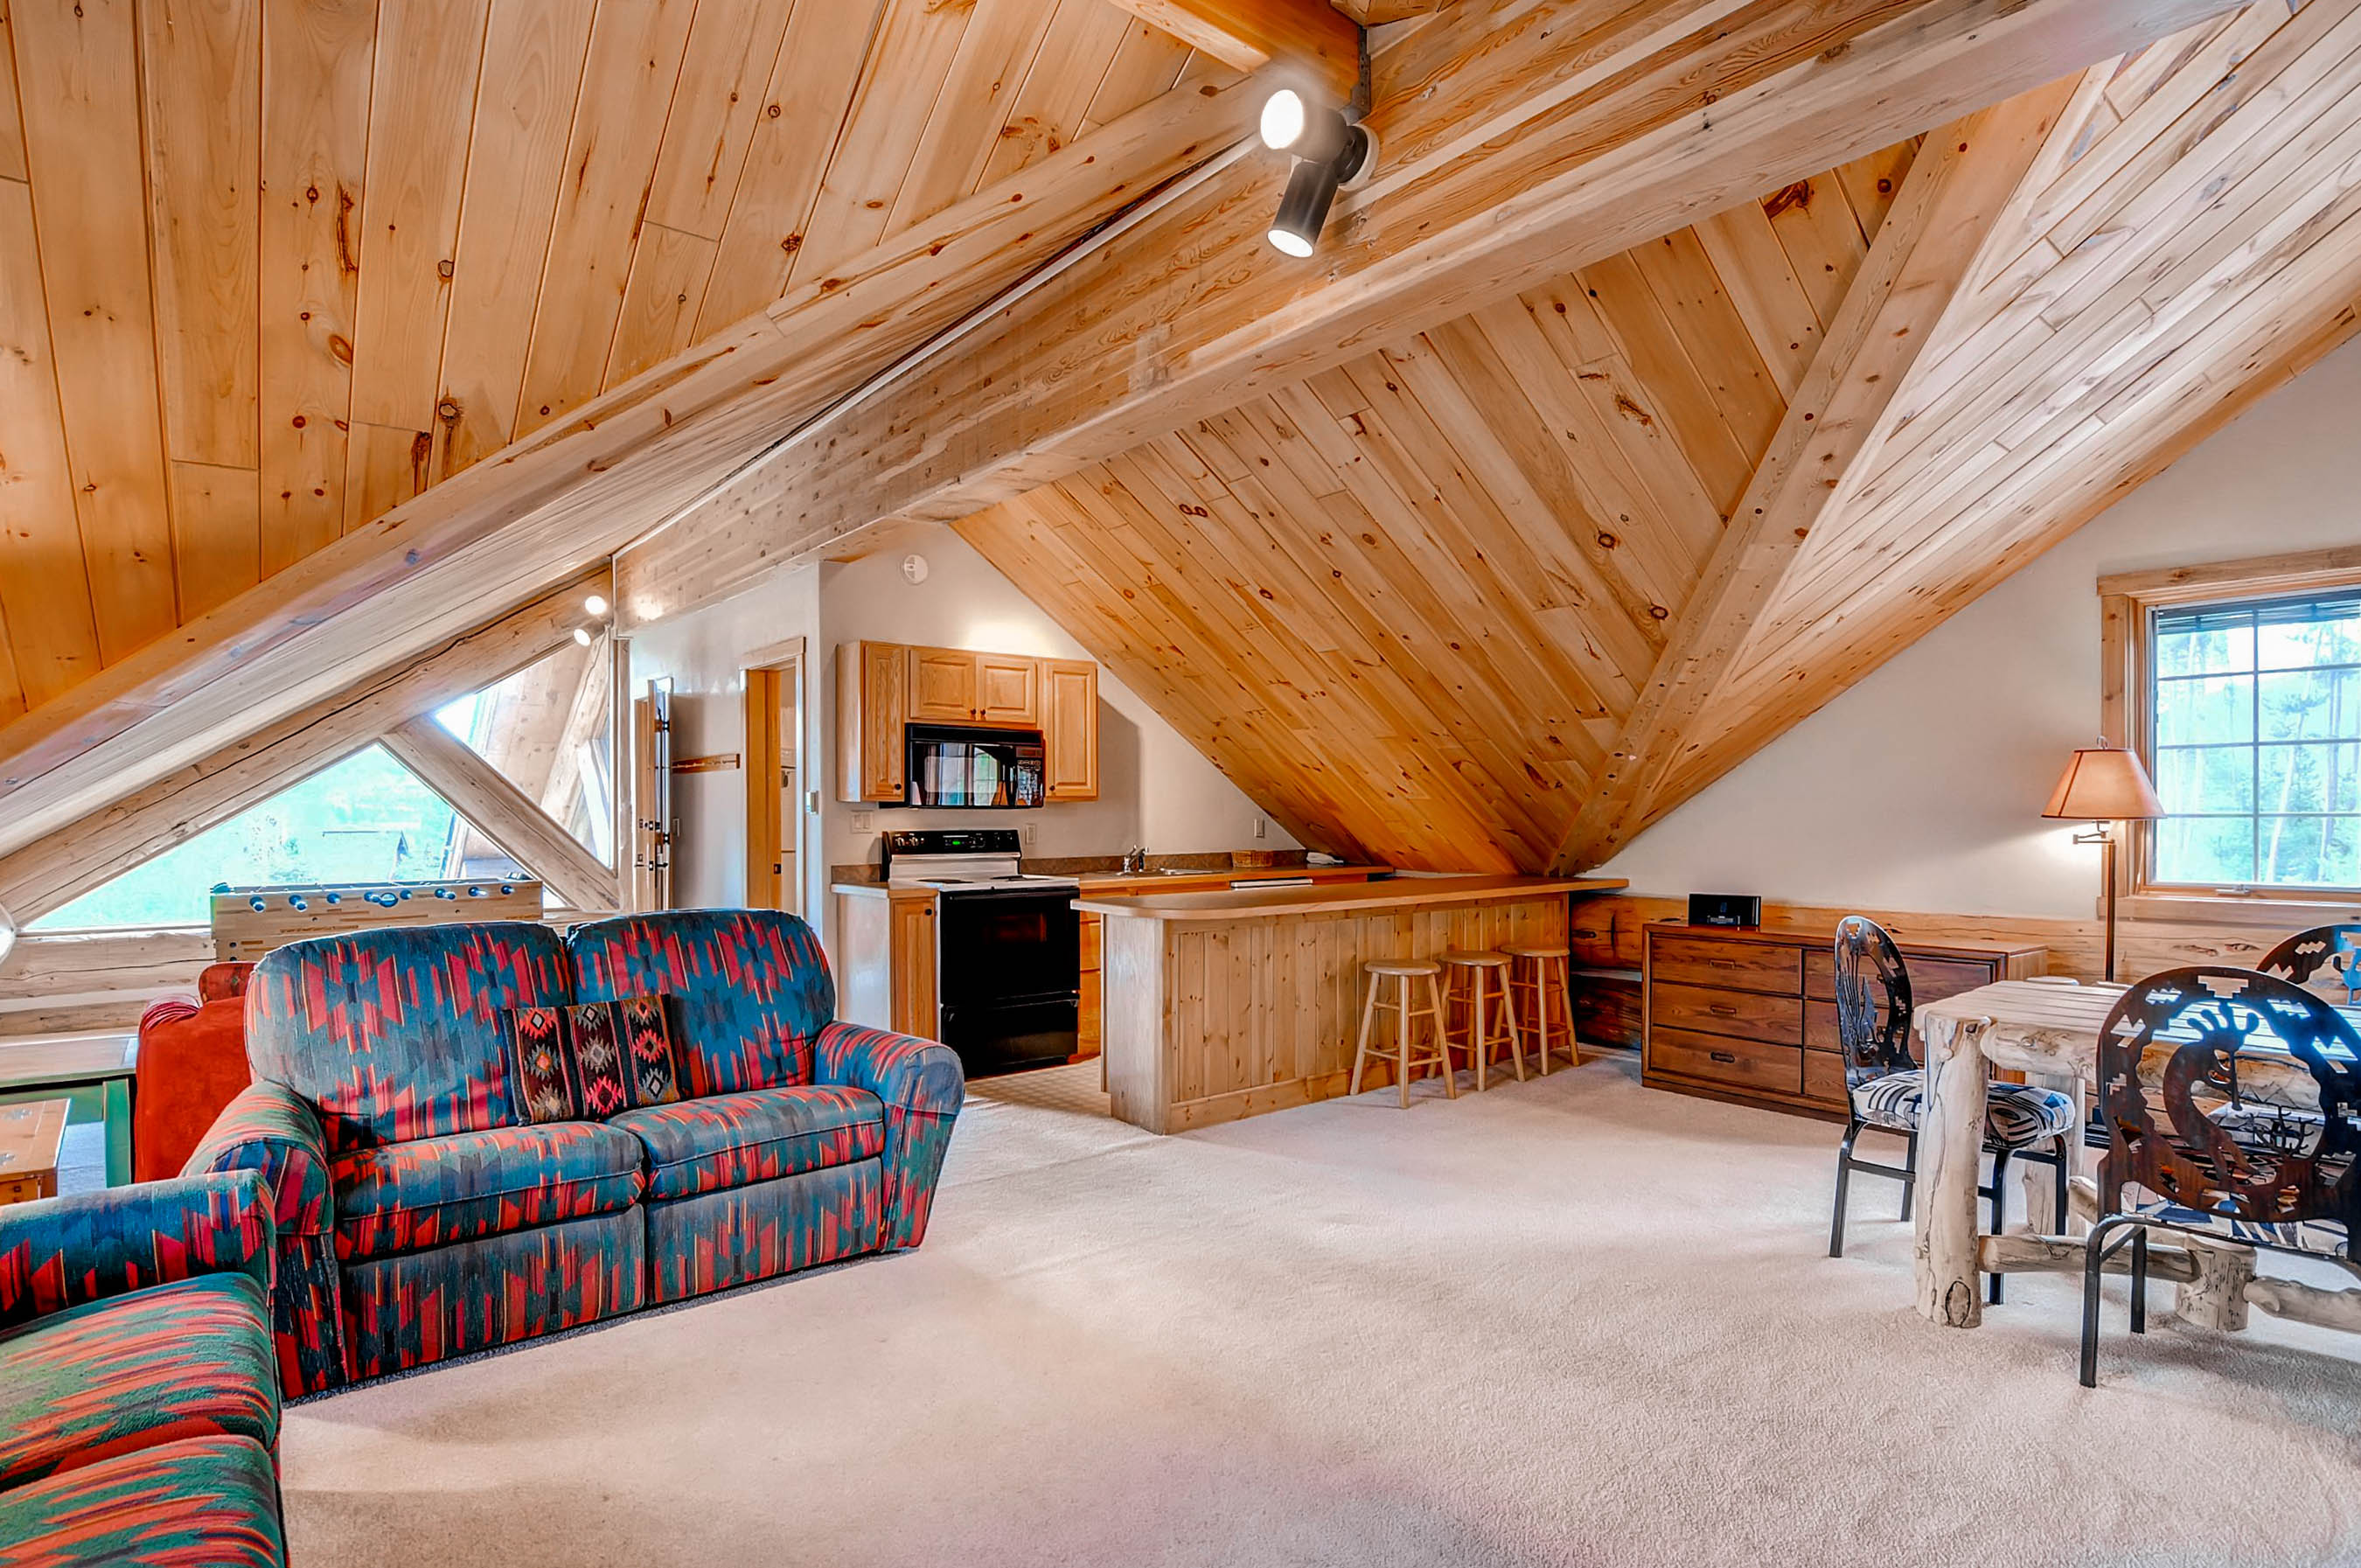 Epic Log Cabin In The Pines Ra89795 Redawning